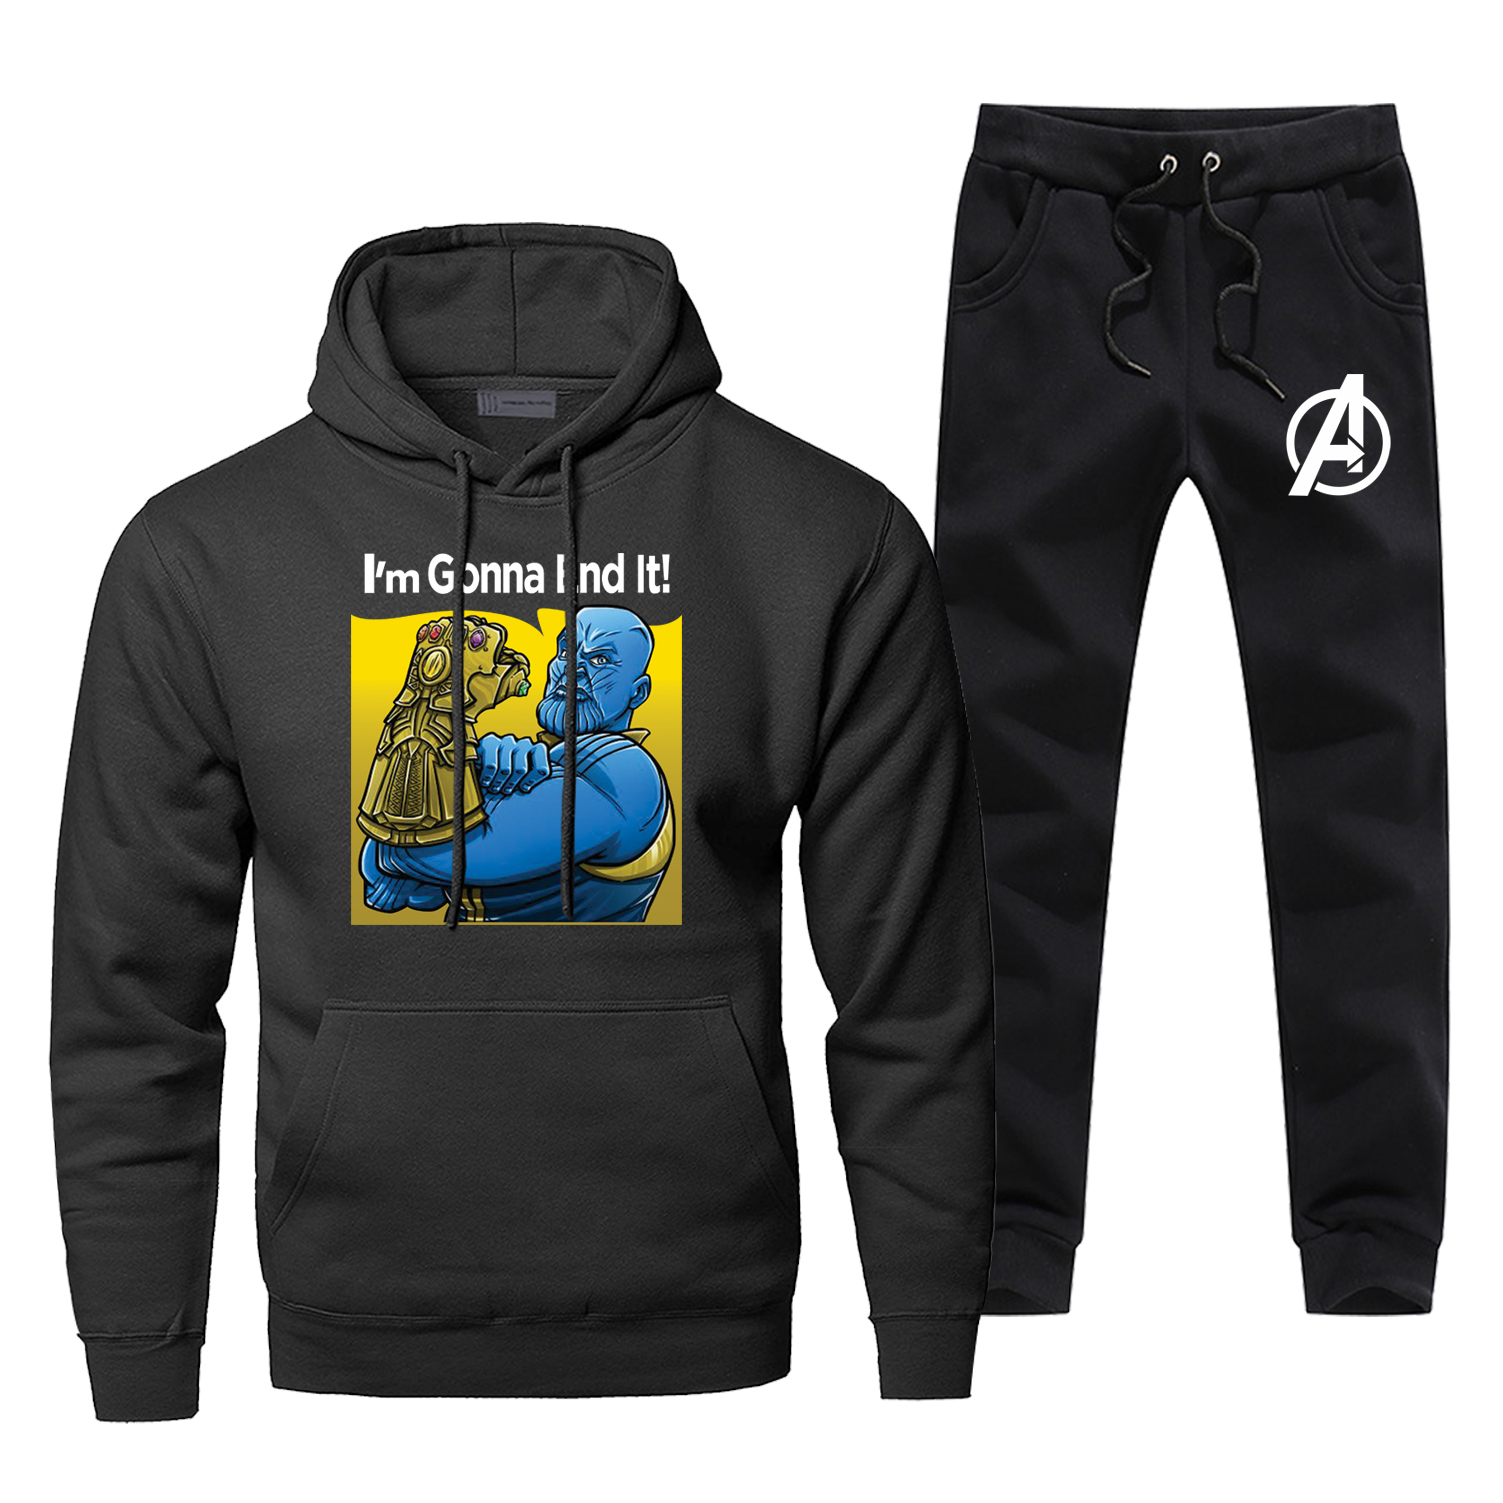 Avengers Thanos Hoodie Pants Set Men Sweatshirt Male Hoodies Sweatshirts Super Hero Mens Sets Two Piece Pant Pullover Hoody Coat